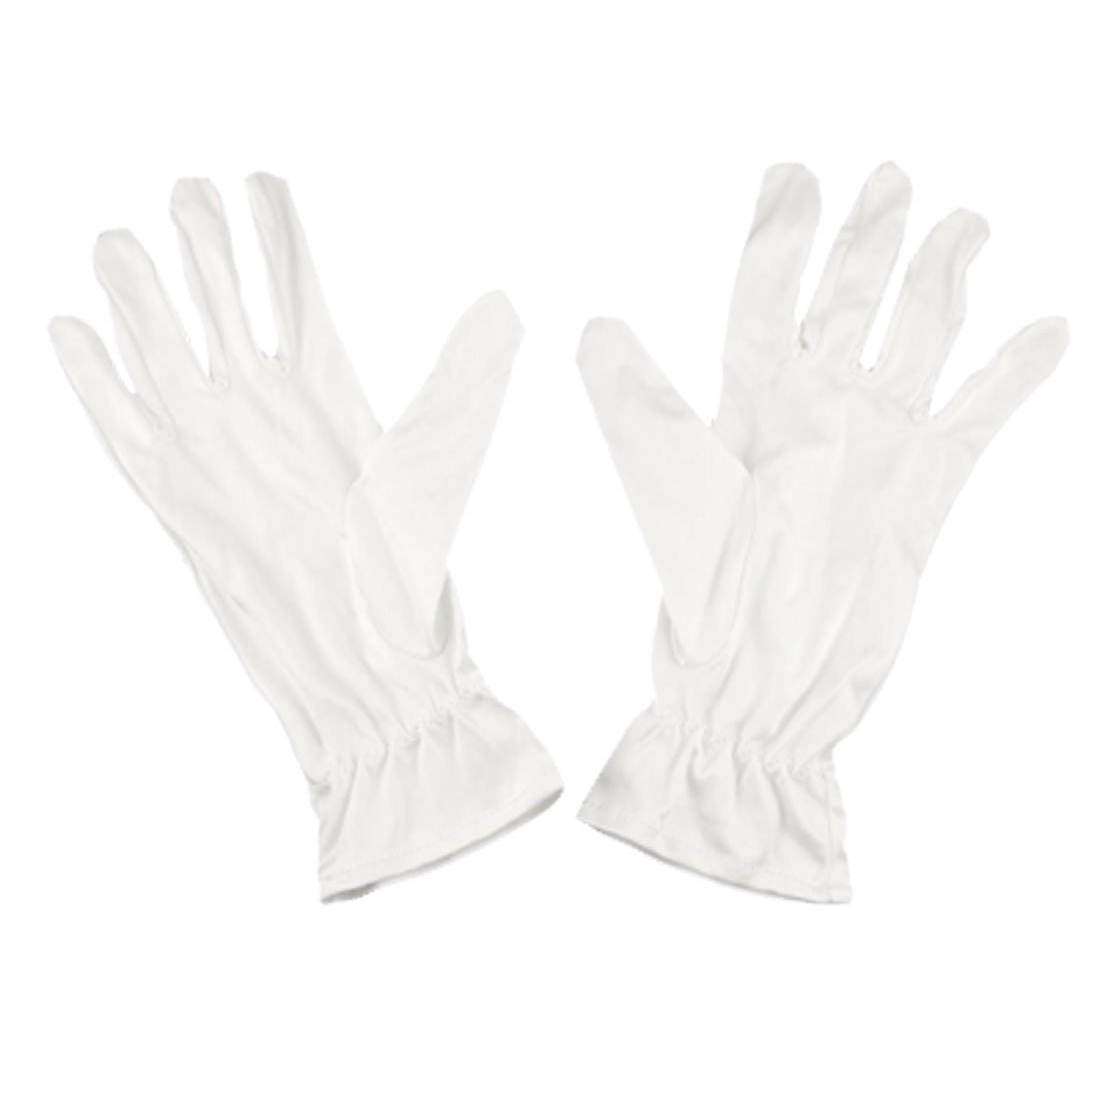 MOOL White Mini faser Dust Proof Jewelry Silver Inspection Gloves-in Safety Gloves from Security & Protection